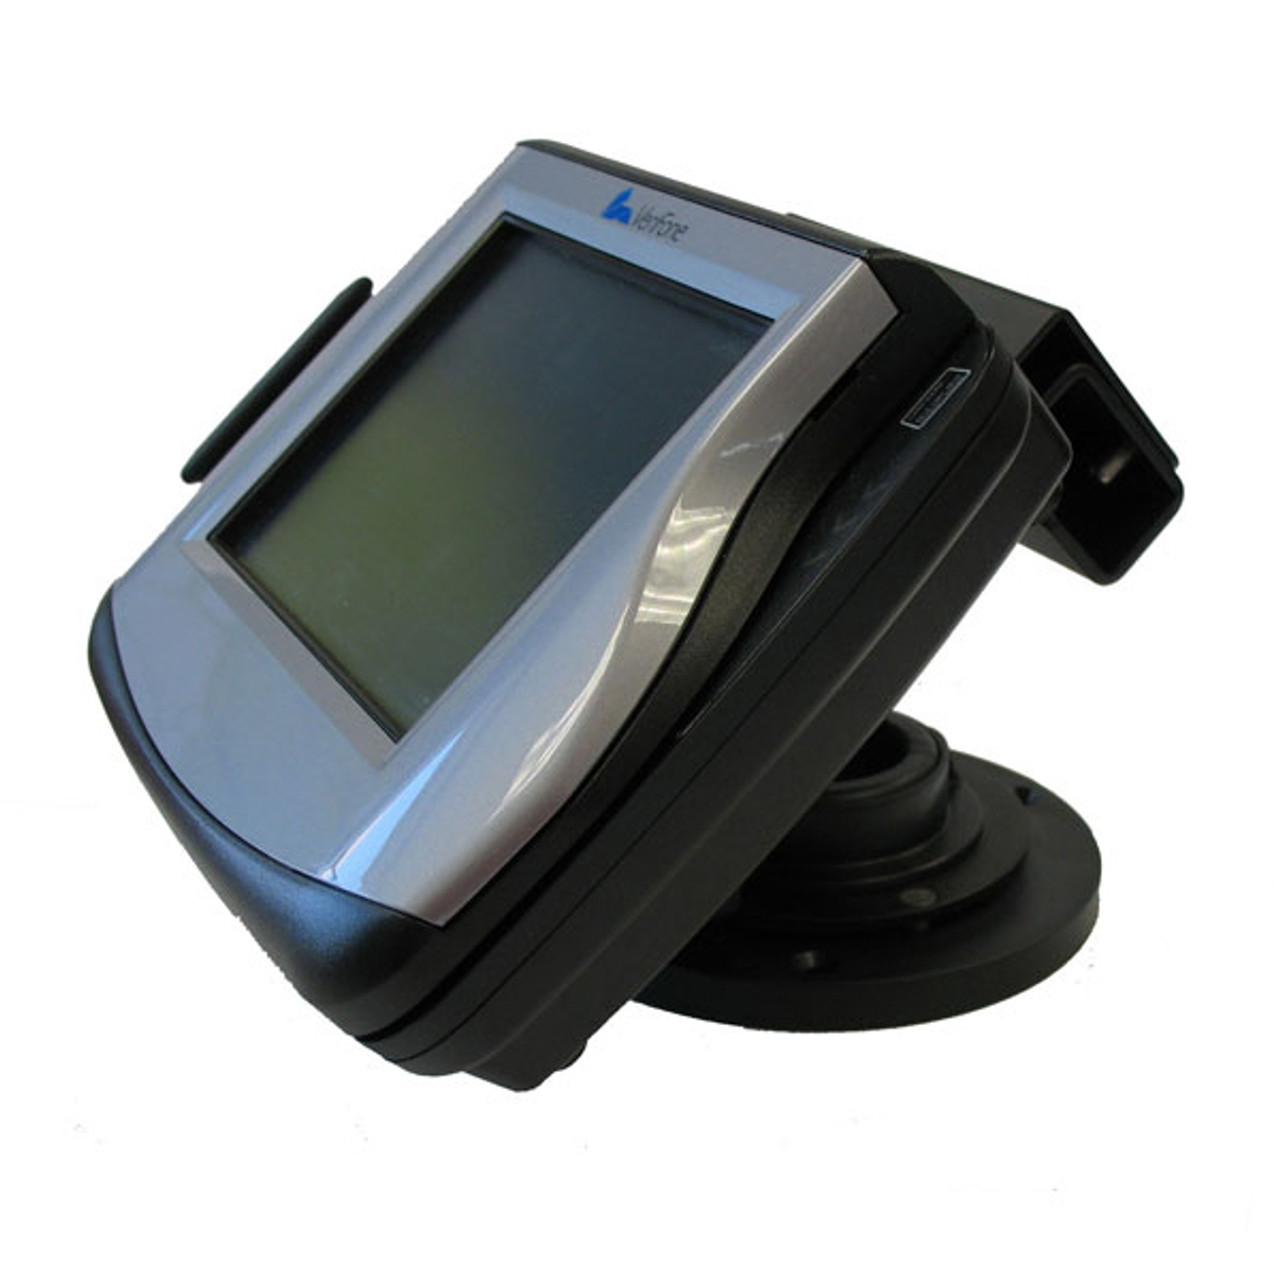 VeriFone MX870 Credit Card Stand Locking Low Profile by Swivel Stands